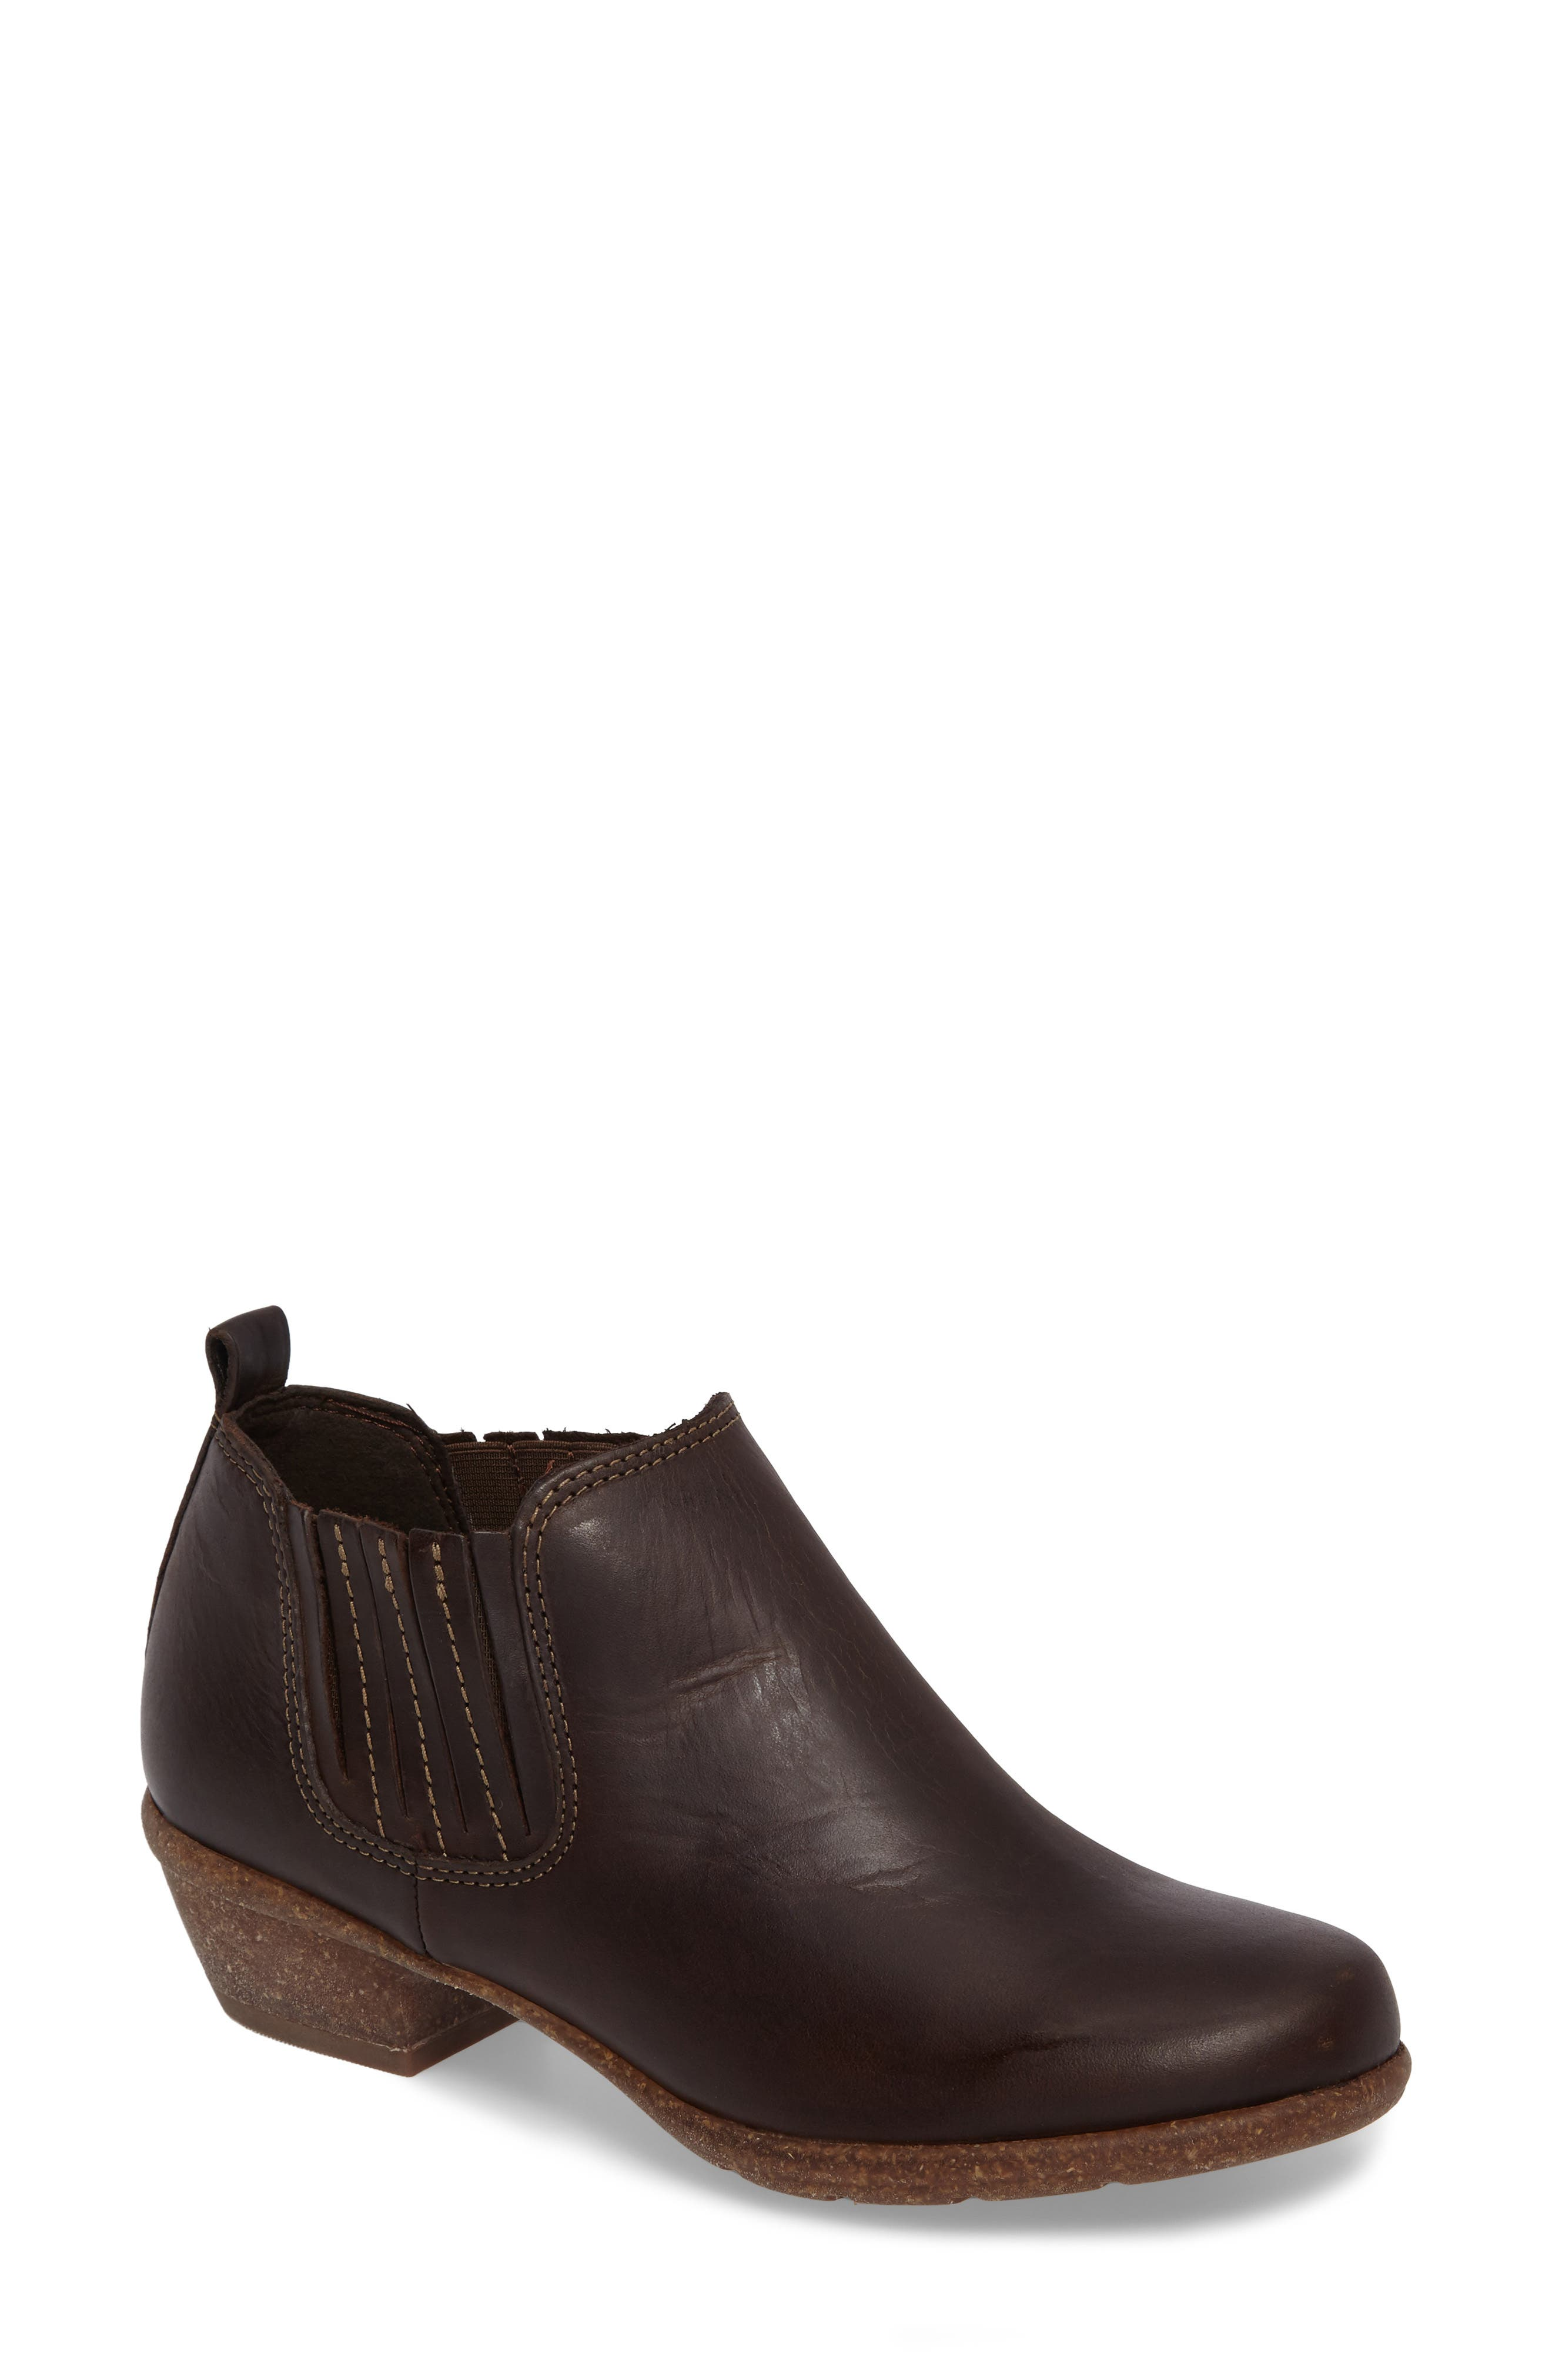 Wilrose Jade Low Chelsea Bootie,                             Main thumbnail 1, color,                             BROWN NUBUCK LEATHER